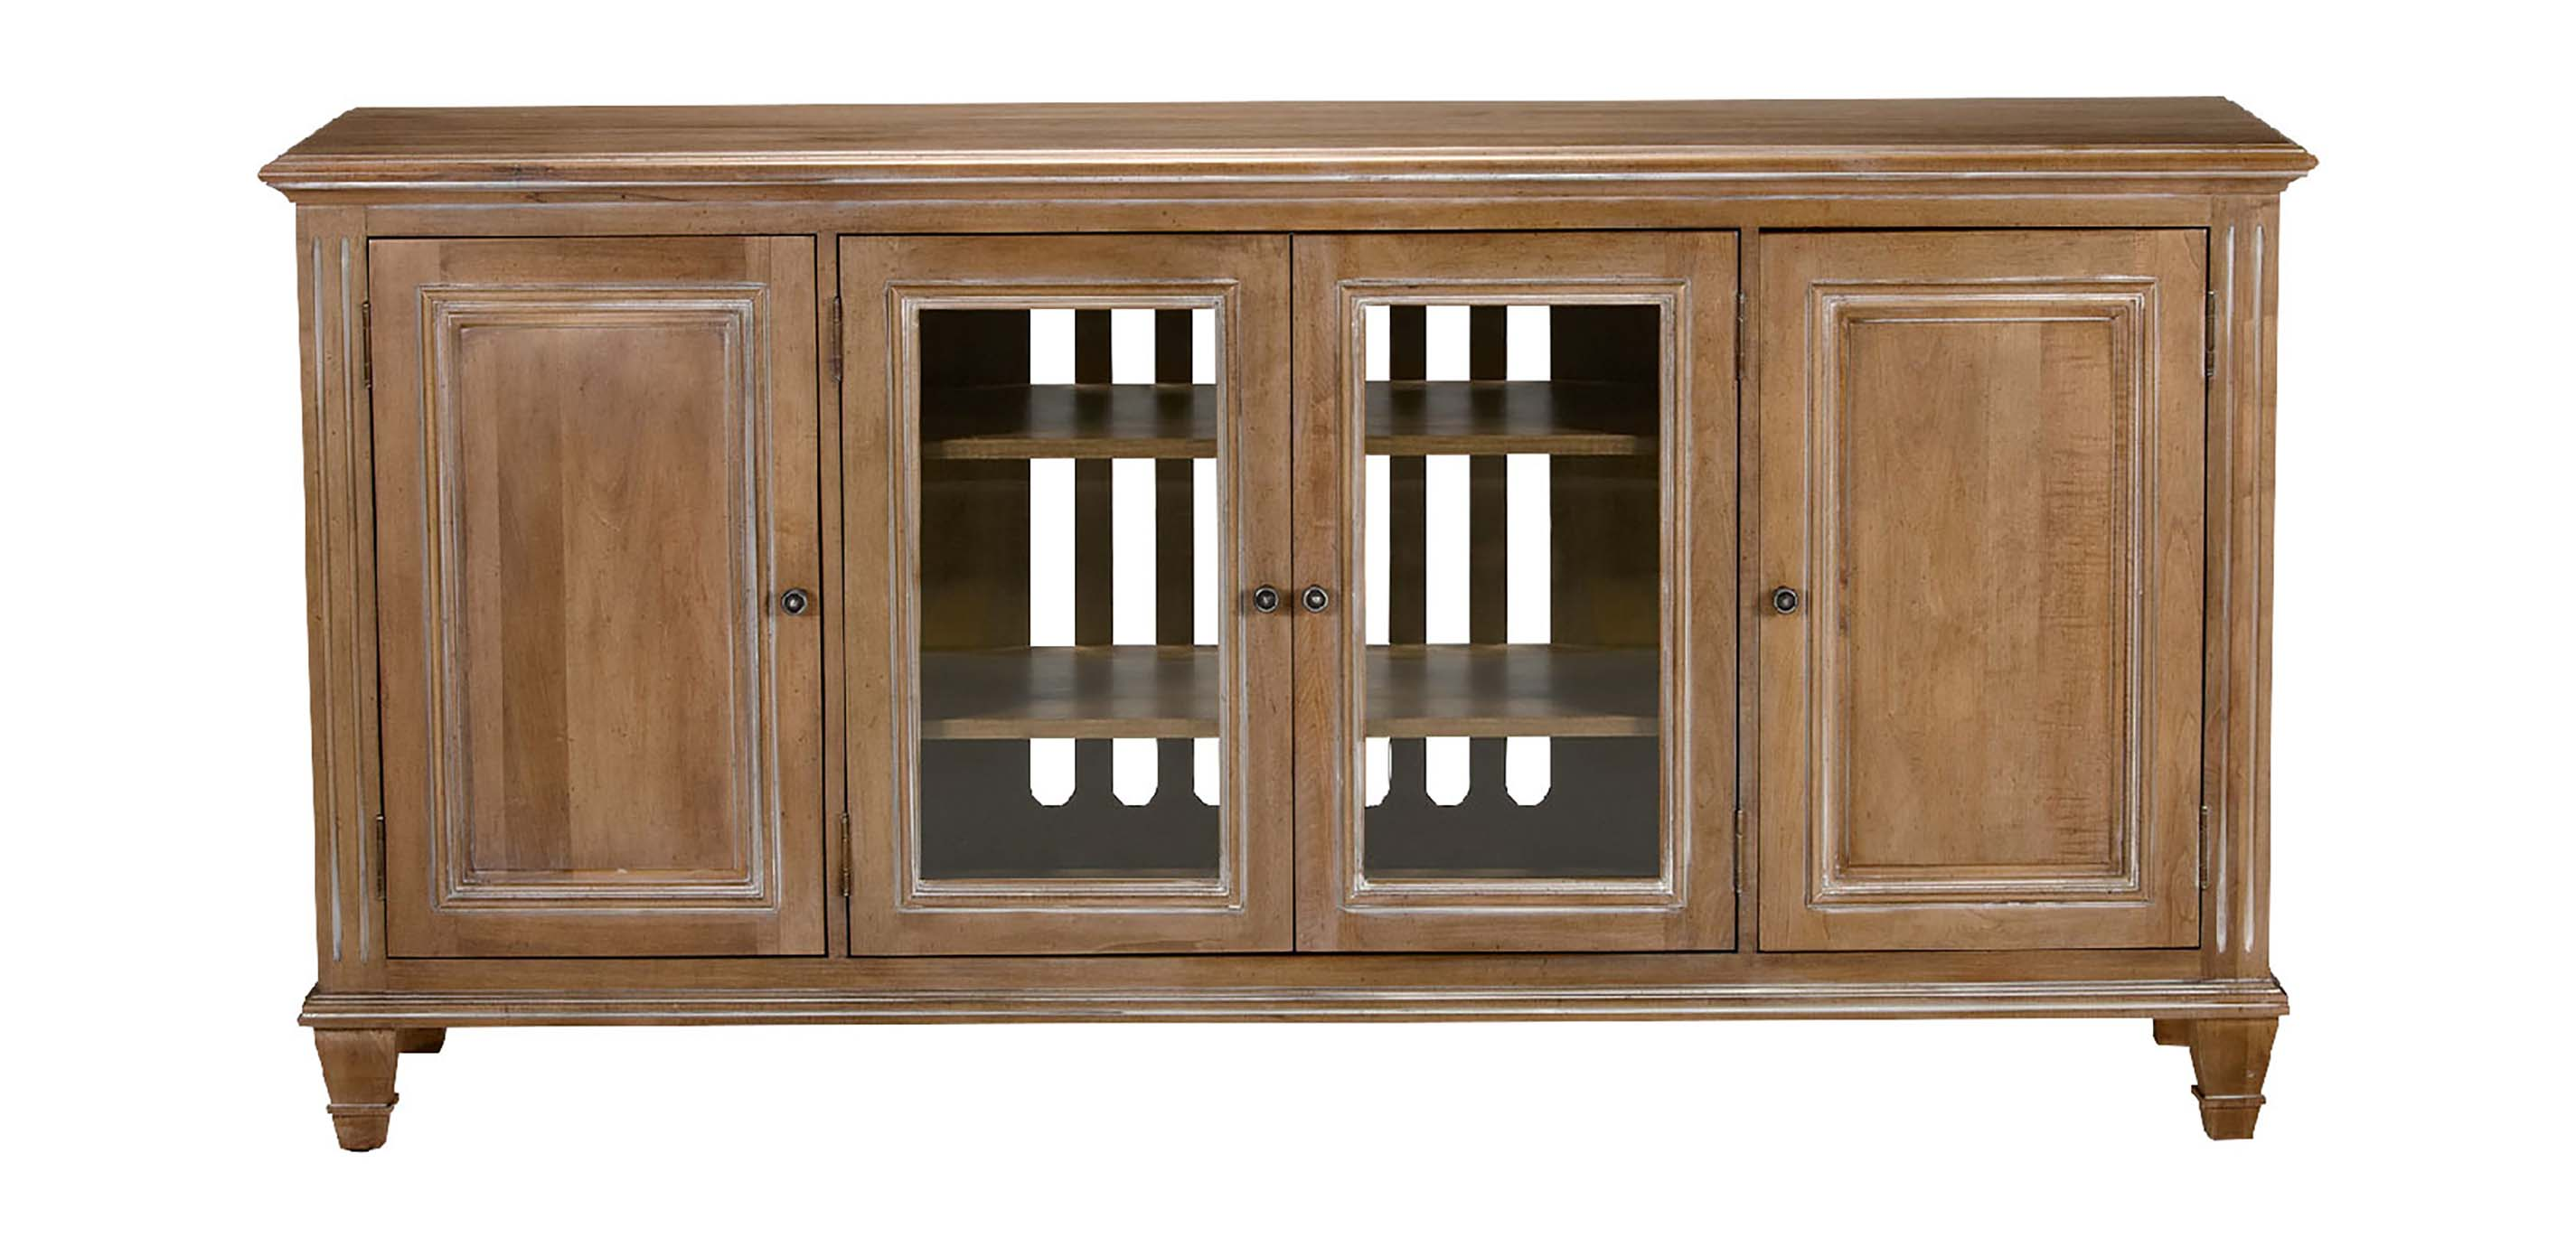 HERITAGE OAKRIDGE HUTCH WITH 4 GLASS DOORS - Green Gables